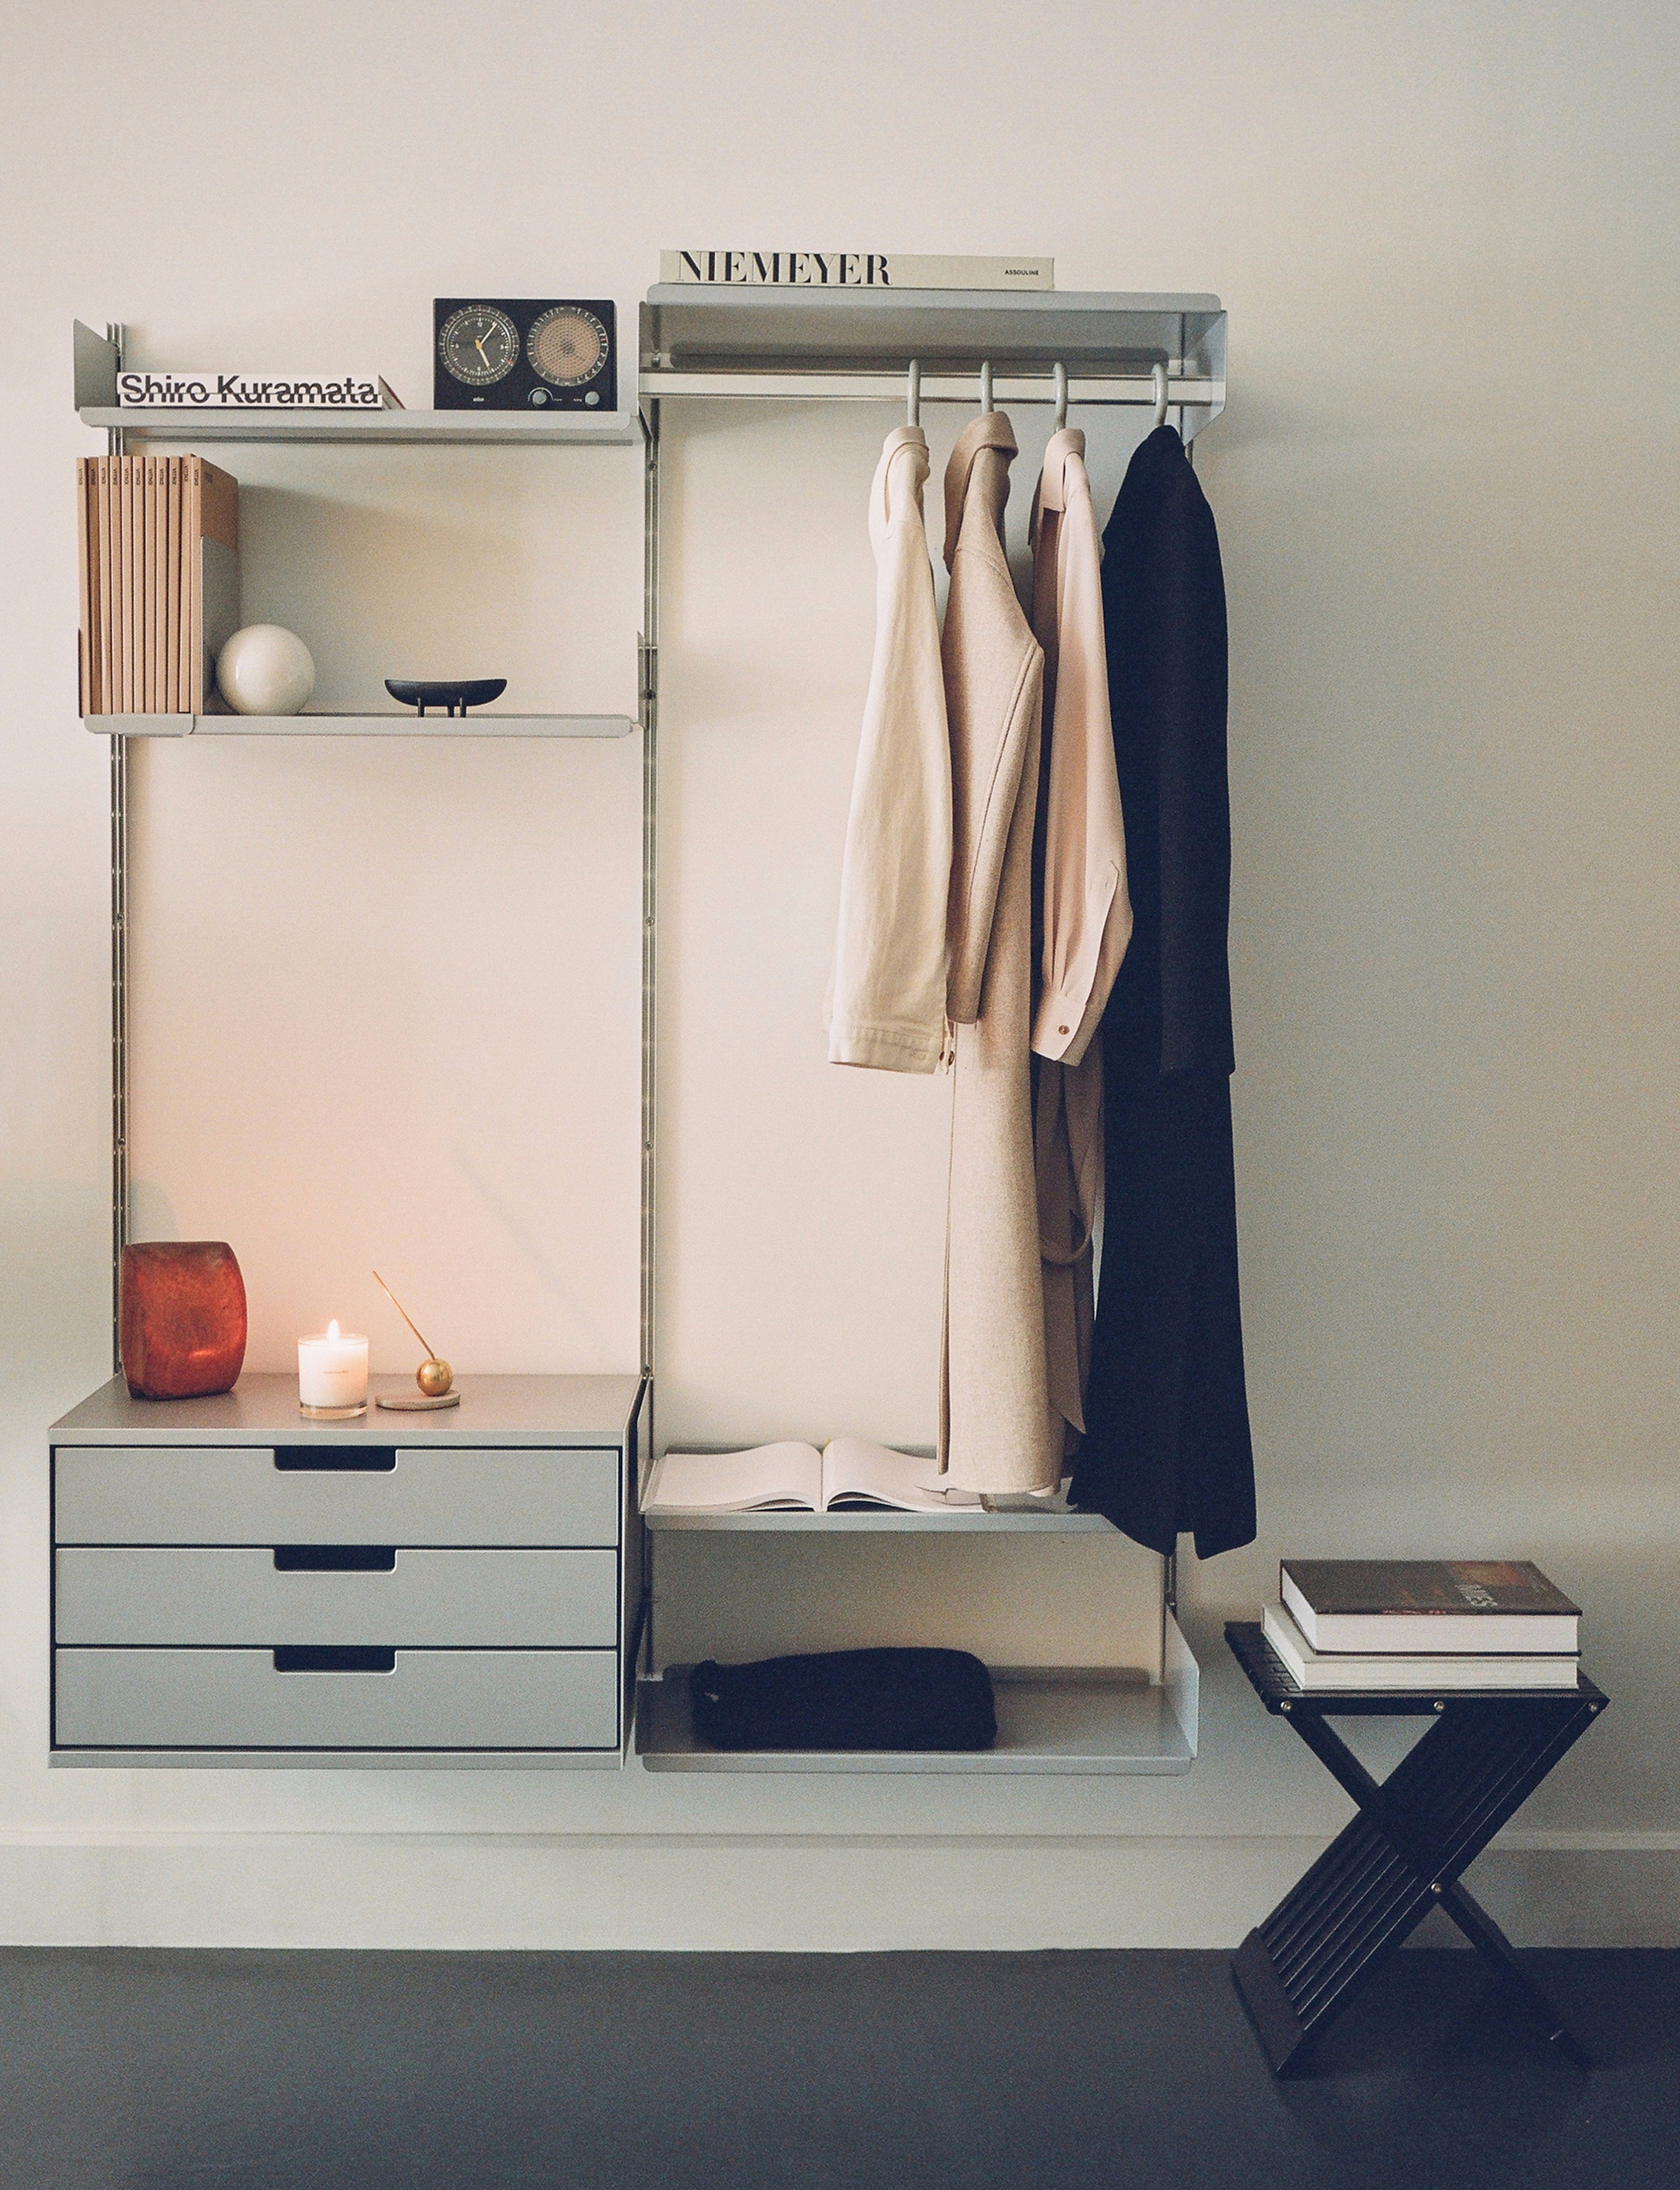 simple shelving system photogra - vitsoe | ello